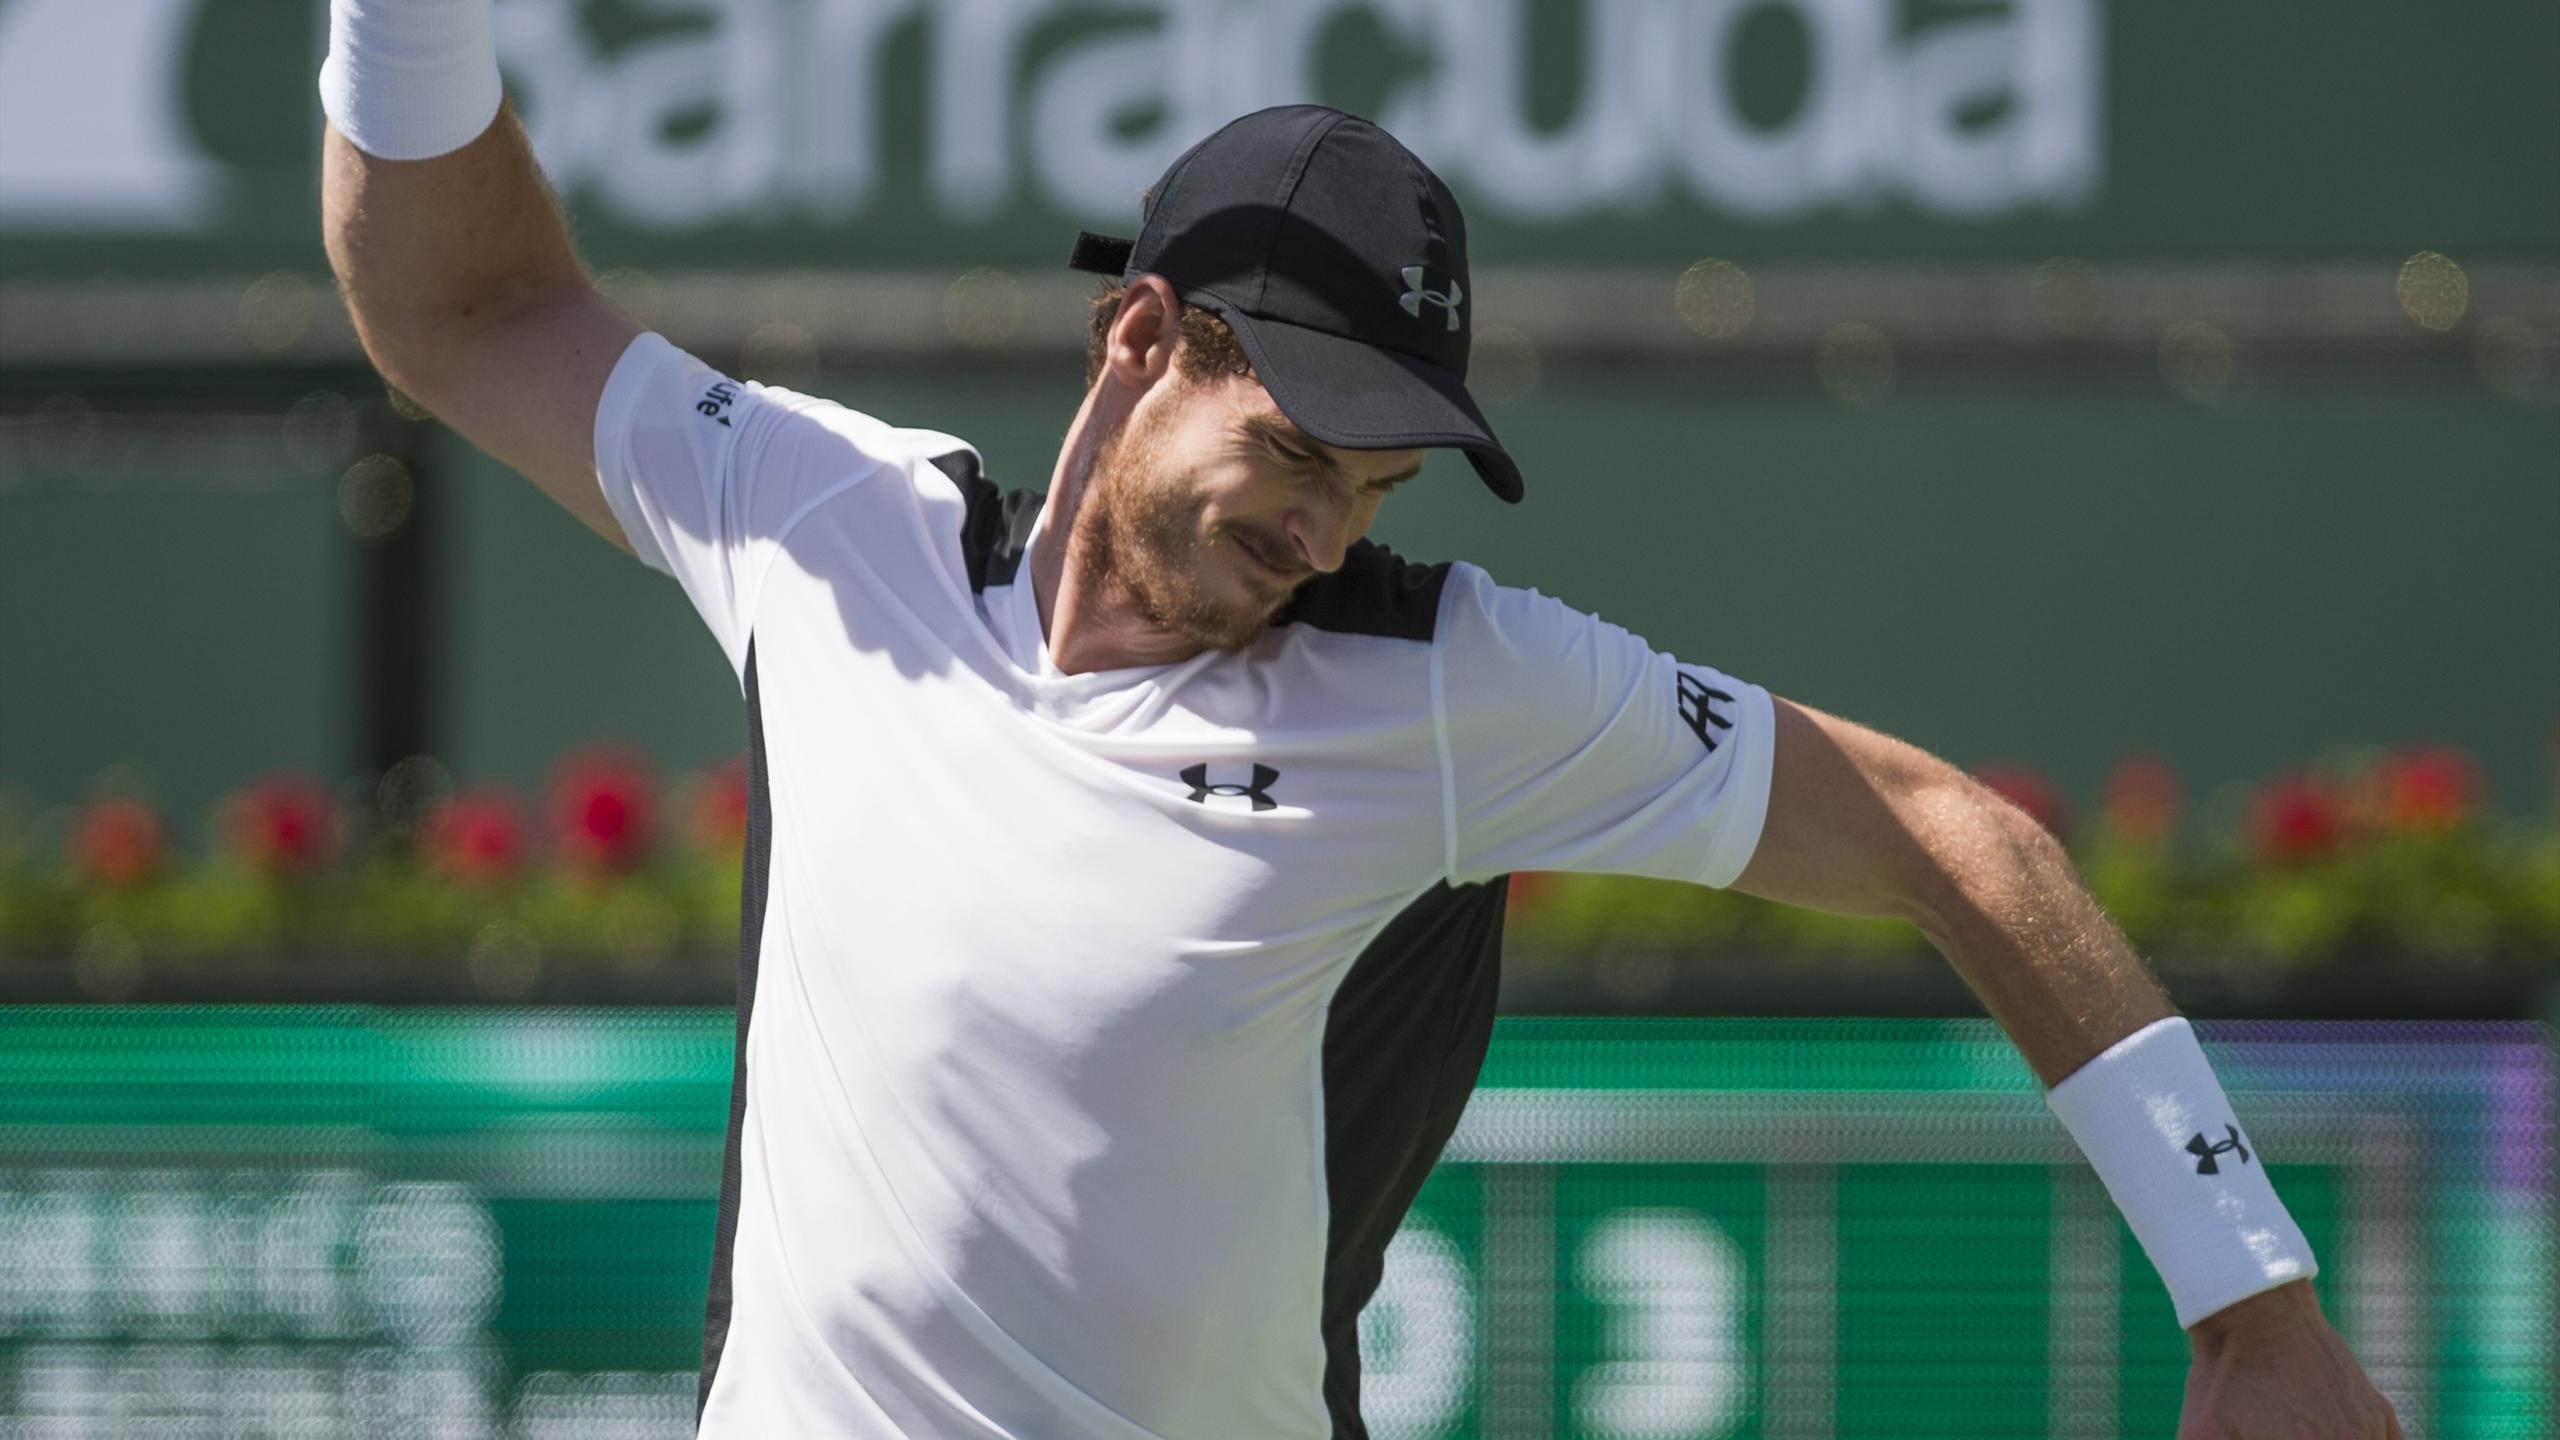 Andy Murray of Great Britain reacts during his match against Federico Delbonis of Argentina at Indian Wells